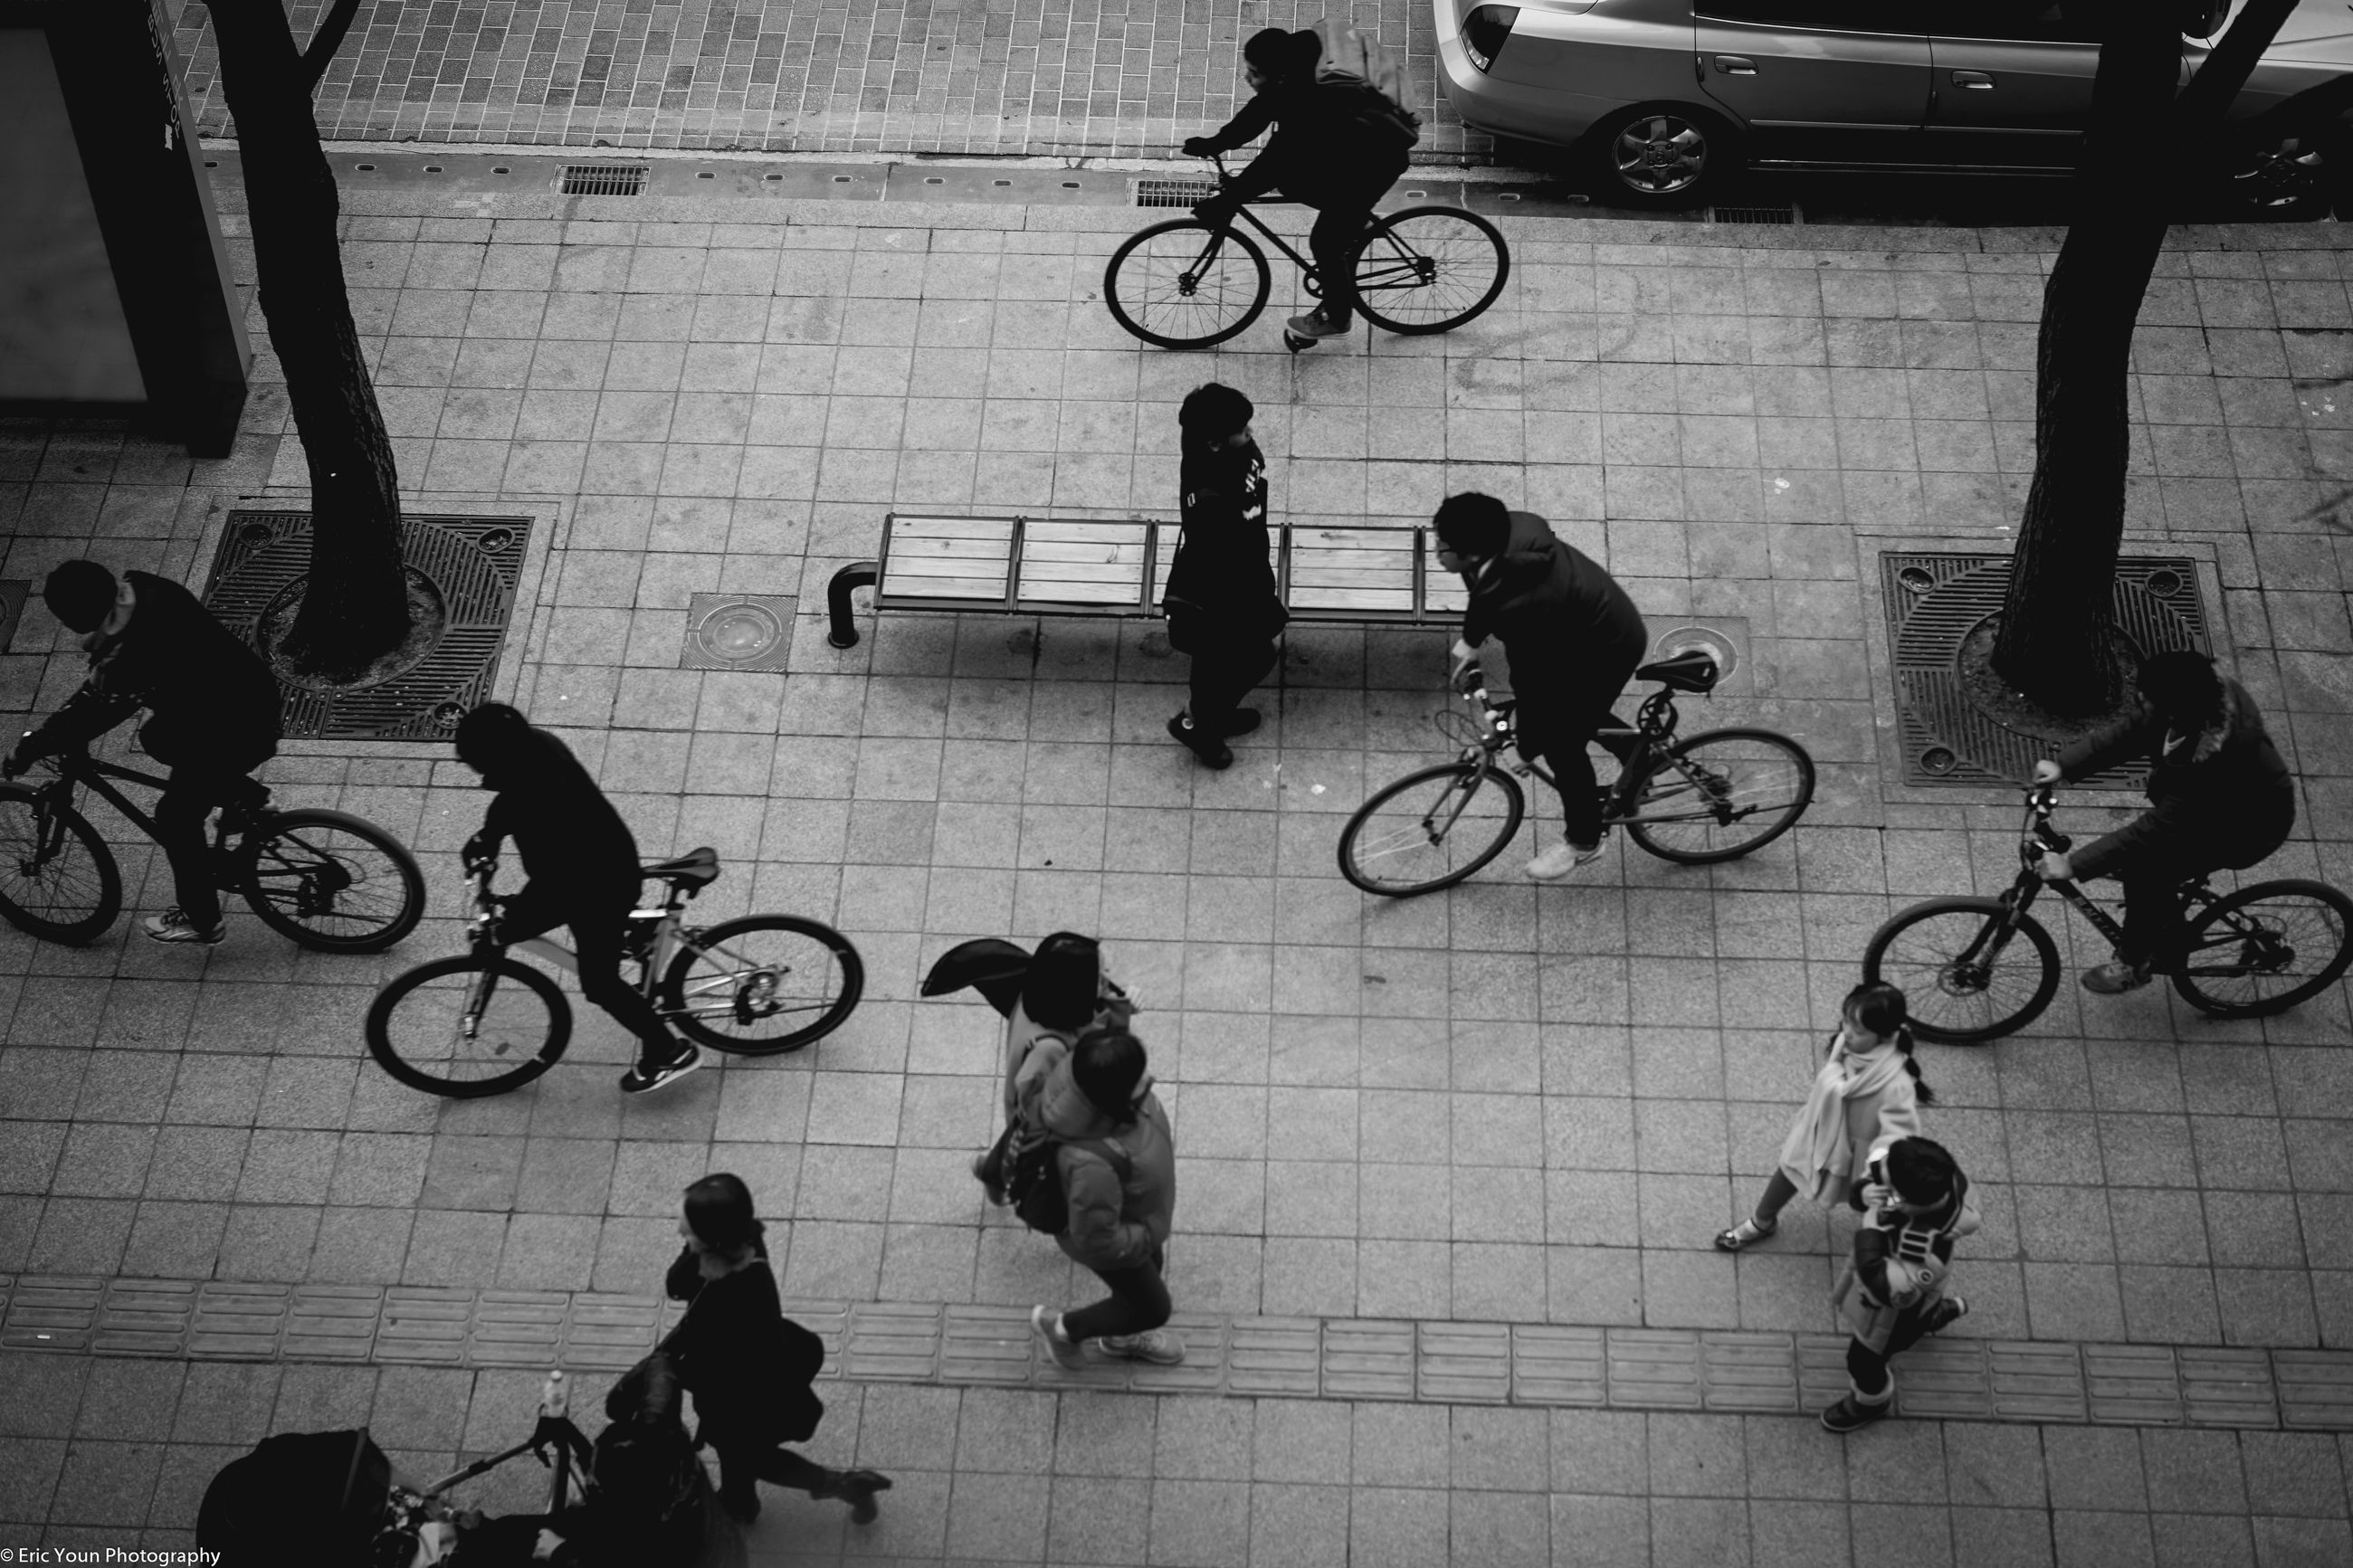 bicycle, transportation, land vehicle, men, mode of transport, lifestyles, riding, leisure activity, full length, street, cycling, walking, city life, shadow, on the move, travel, person